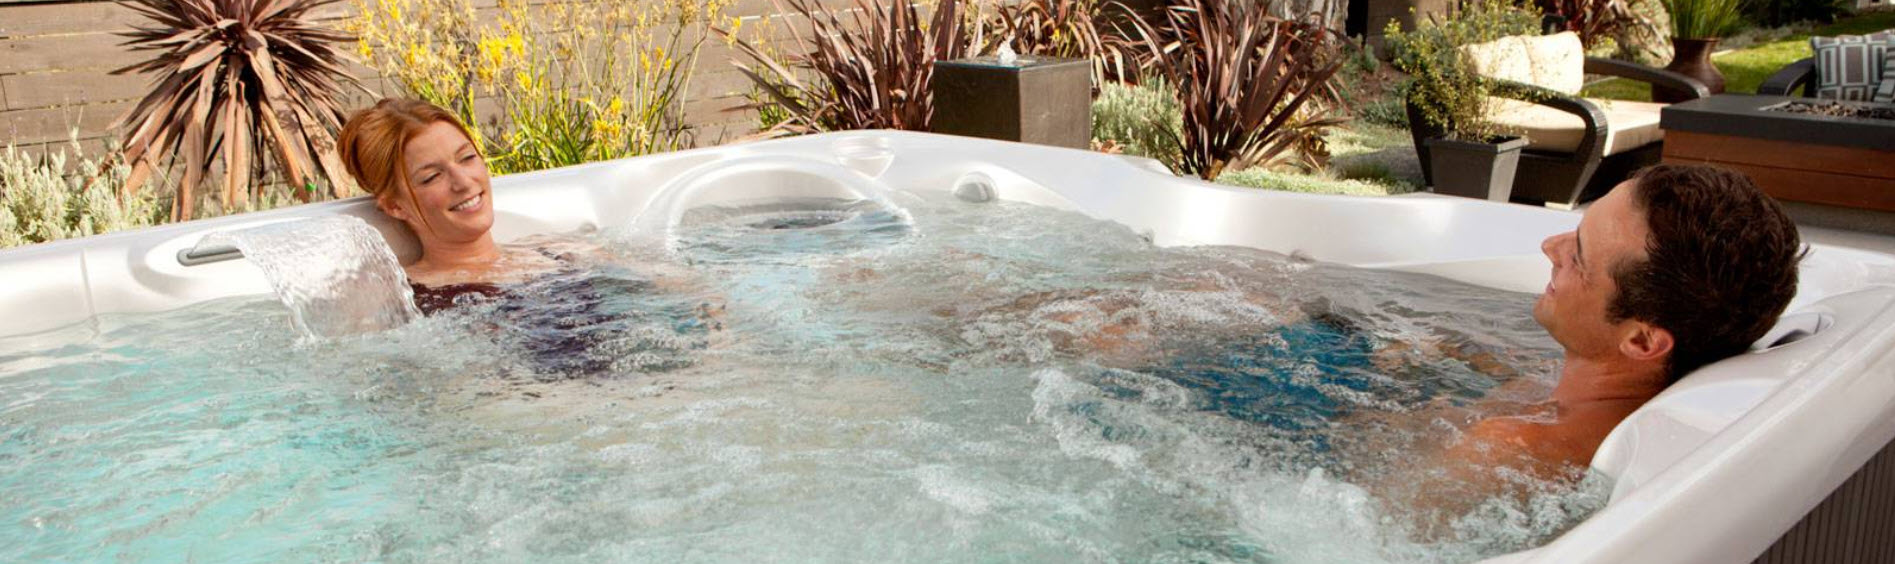 3 Things You Must Know About Portable Spas, Hot Tubs O'Fallon